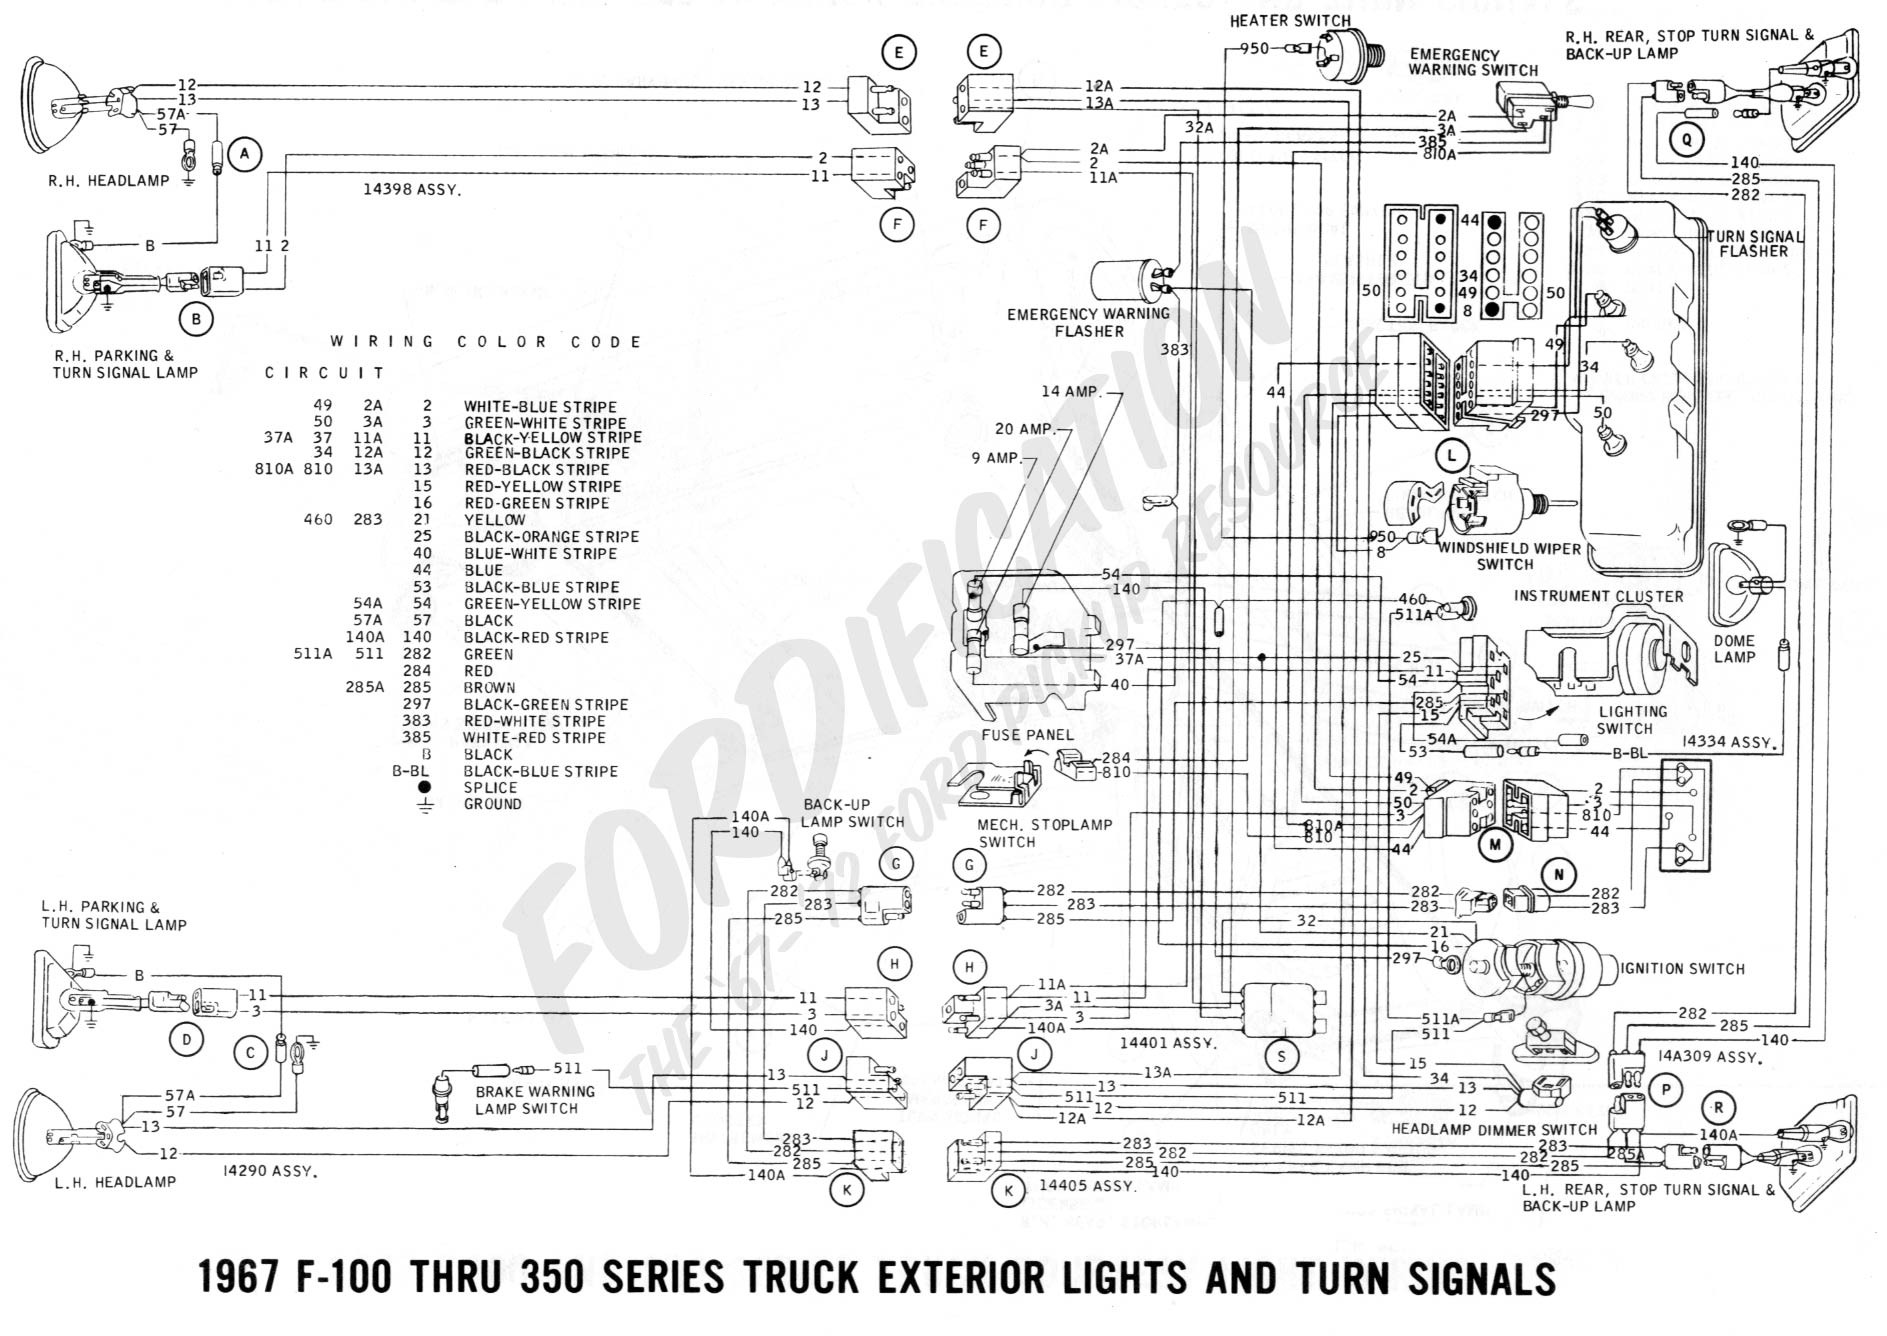 68 Ford Truck Wiring Diagram Data 1968 Impala F100 Ignition Coil Auto Electrical 1998 Diagrams